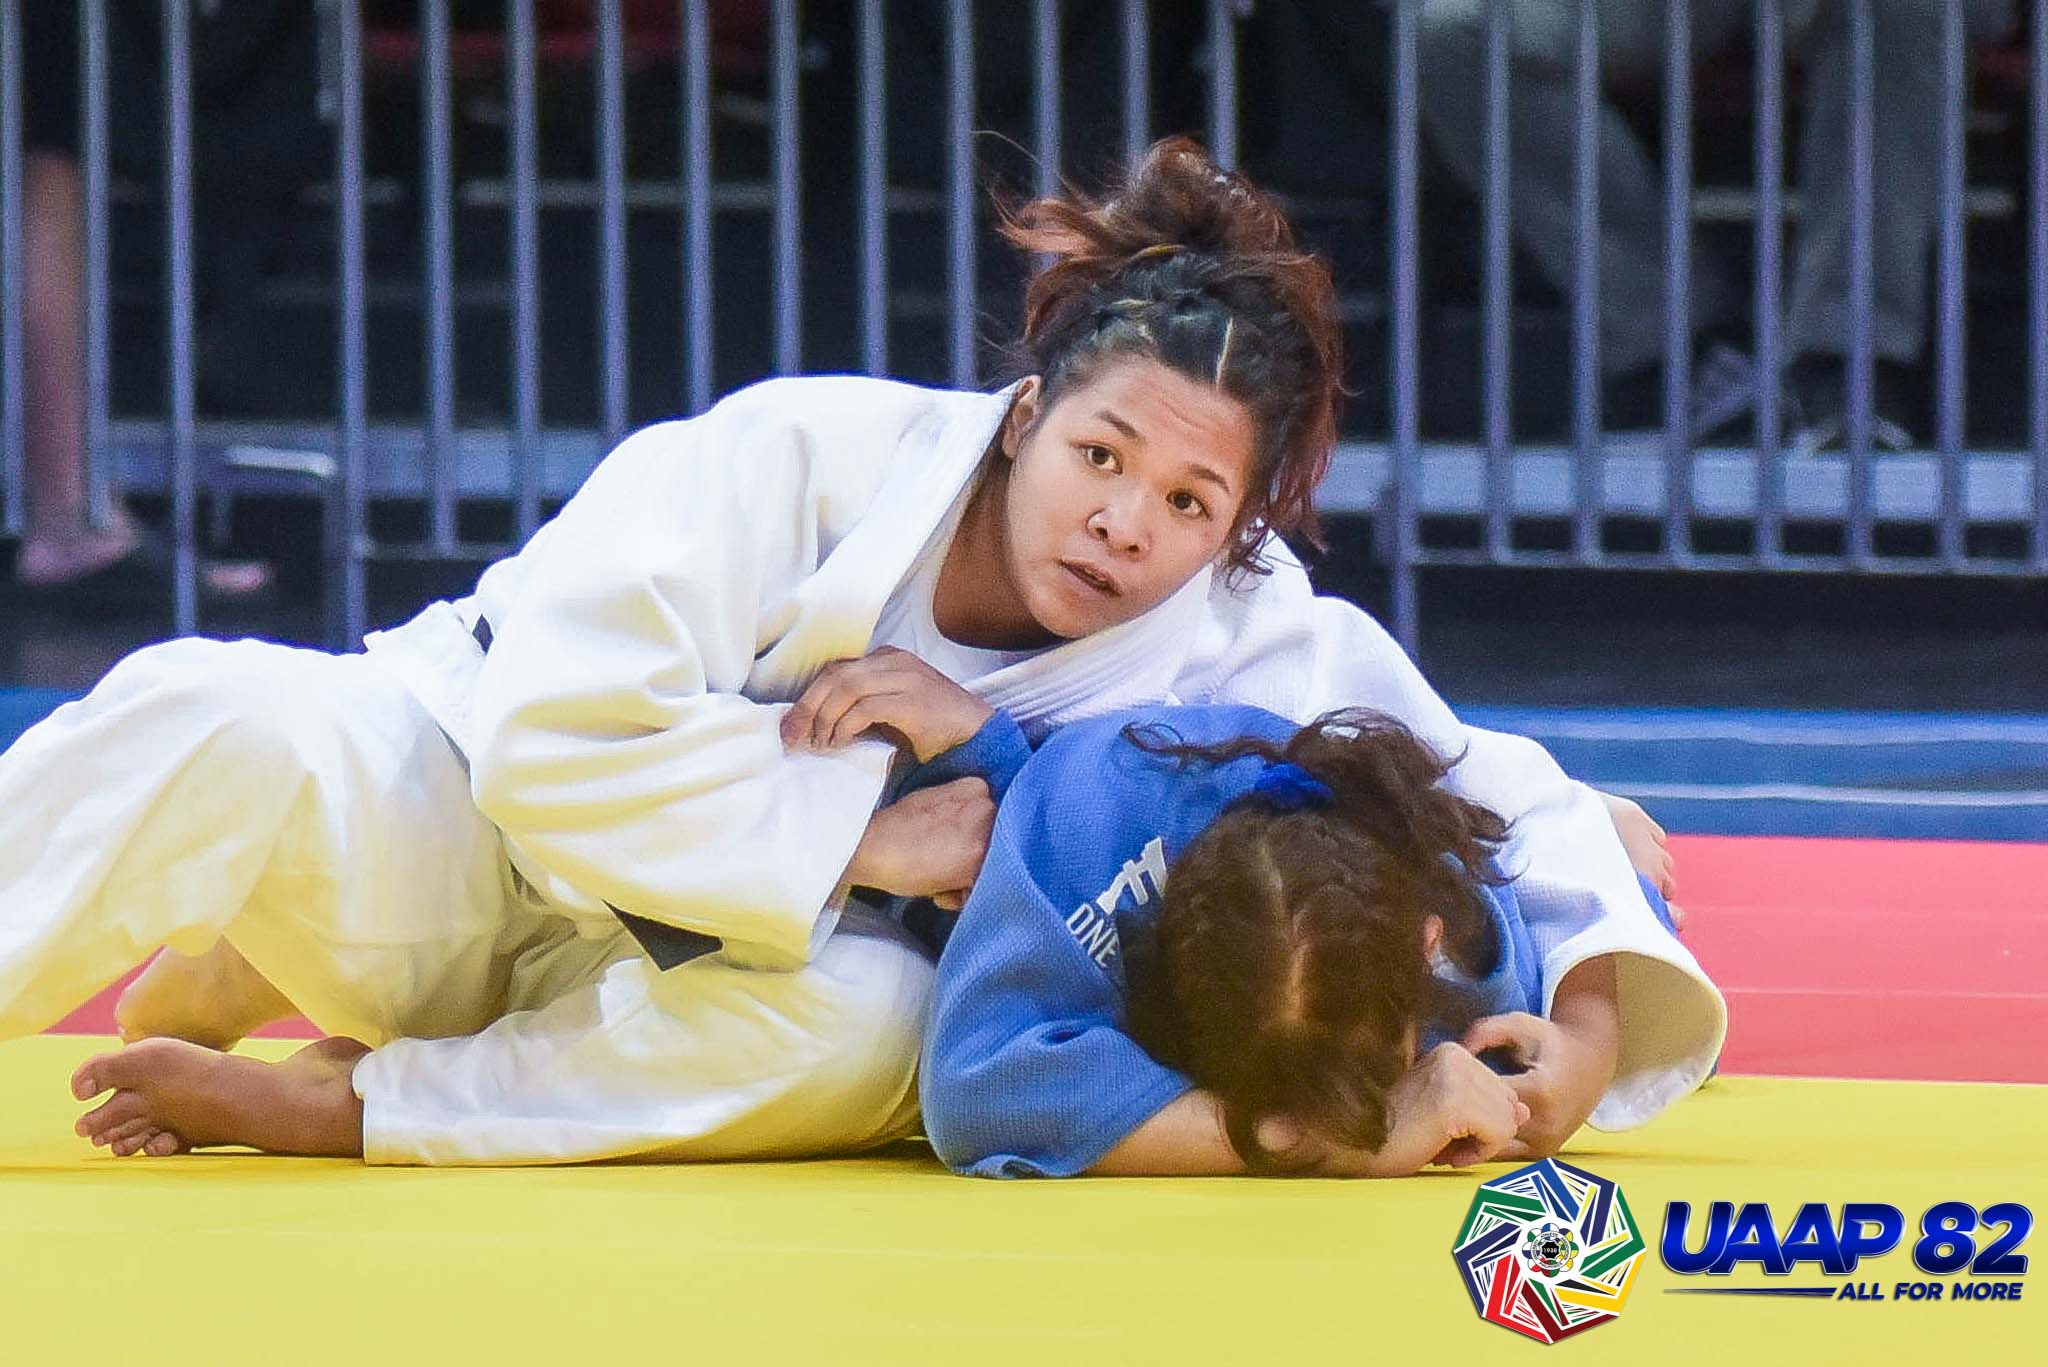 UAAP82-JUDO-JRS-70KG-GIRLS-3RD-PHOTO-WHITE-VILLENA-DLS-BLUE-MABABANGLOOB-ADMU Donaire, Saria lead DLSZ to surprising start in UAAP 82 HS Judo as Quimba sisters give UST early lead ADMU DLSU FEU Judo News UAAP UE UST  - philippine sports news